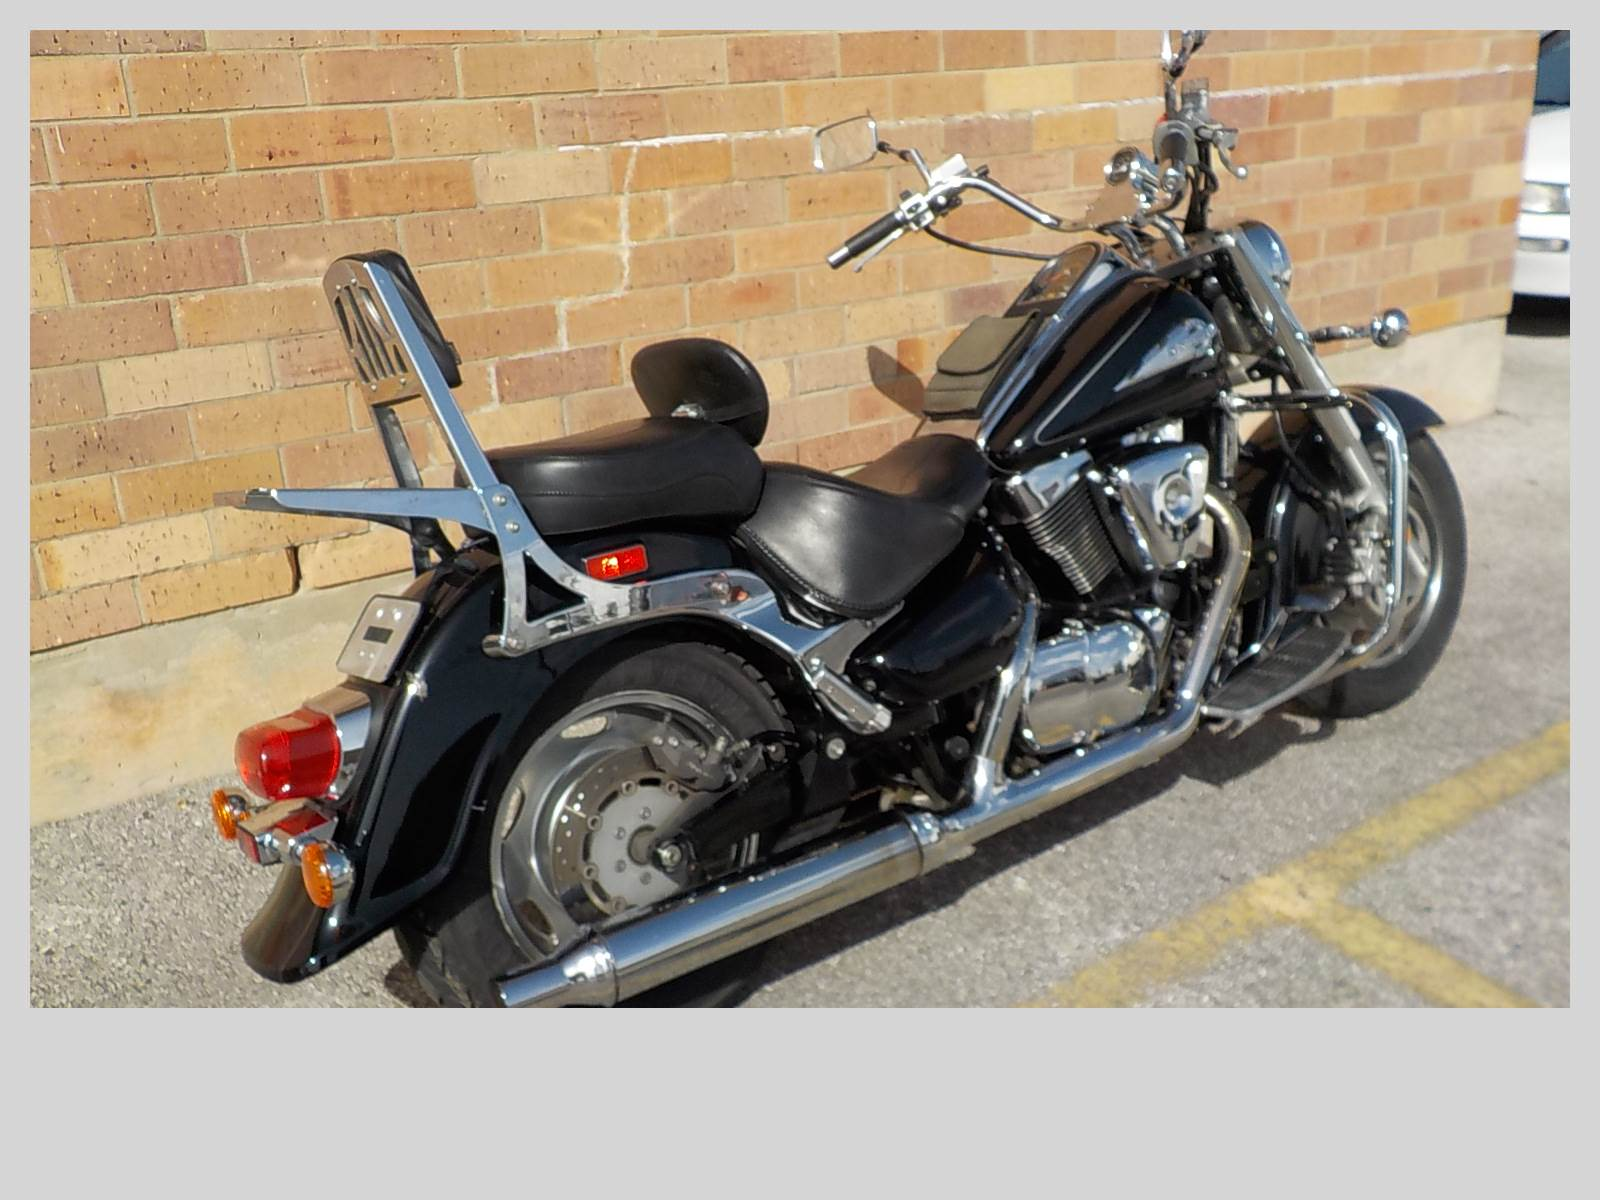 2002 Suzuki Intruder 1500 in San Antonio, Texas